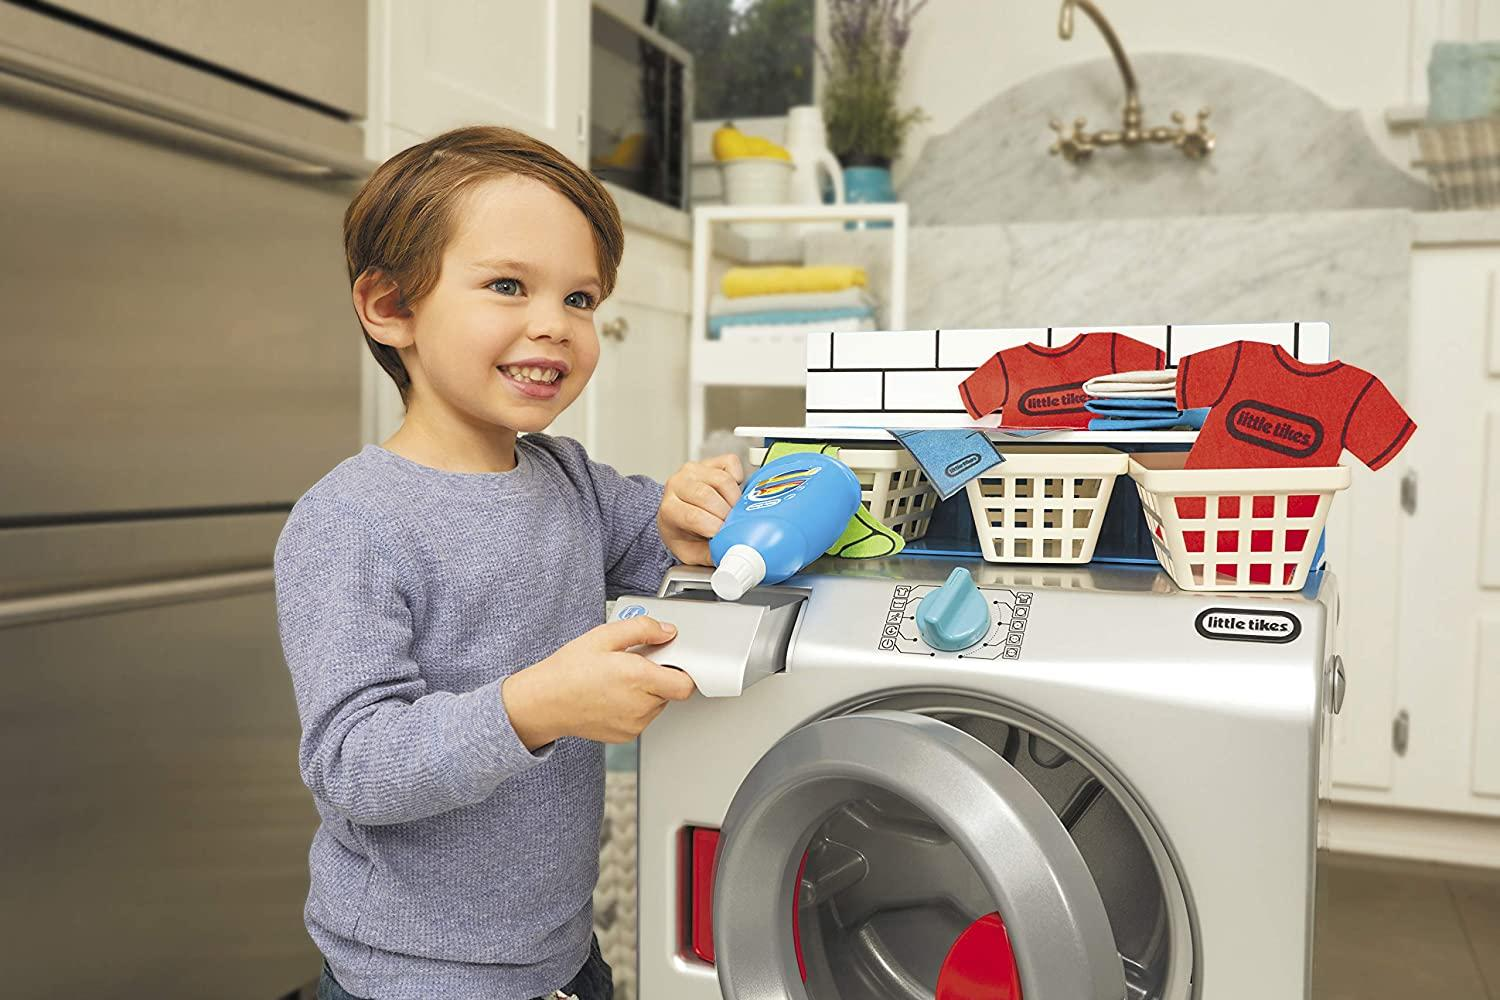 Little Tikes First Appliances Washer Dryer Toymaster Ballina